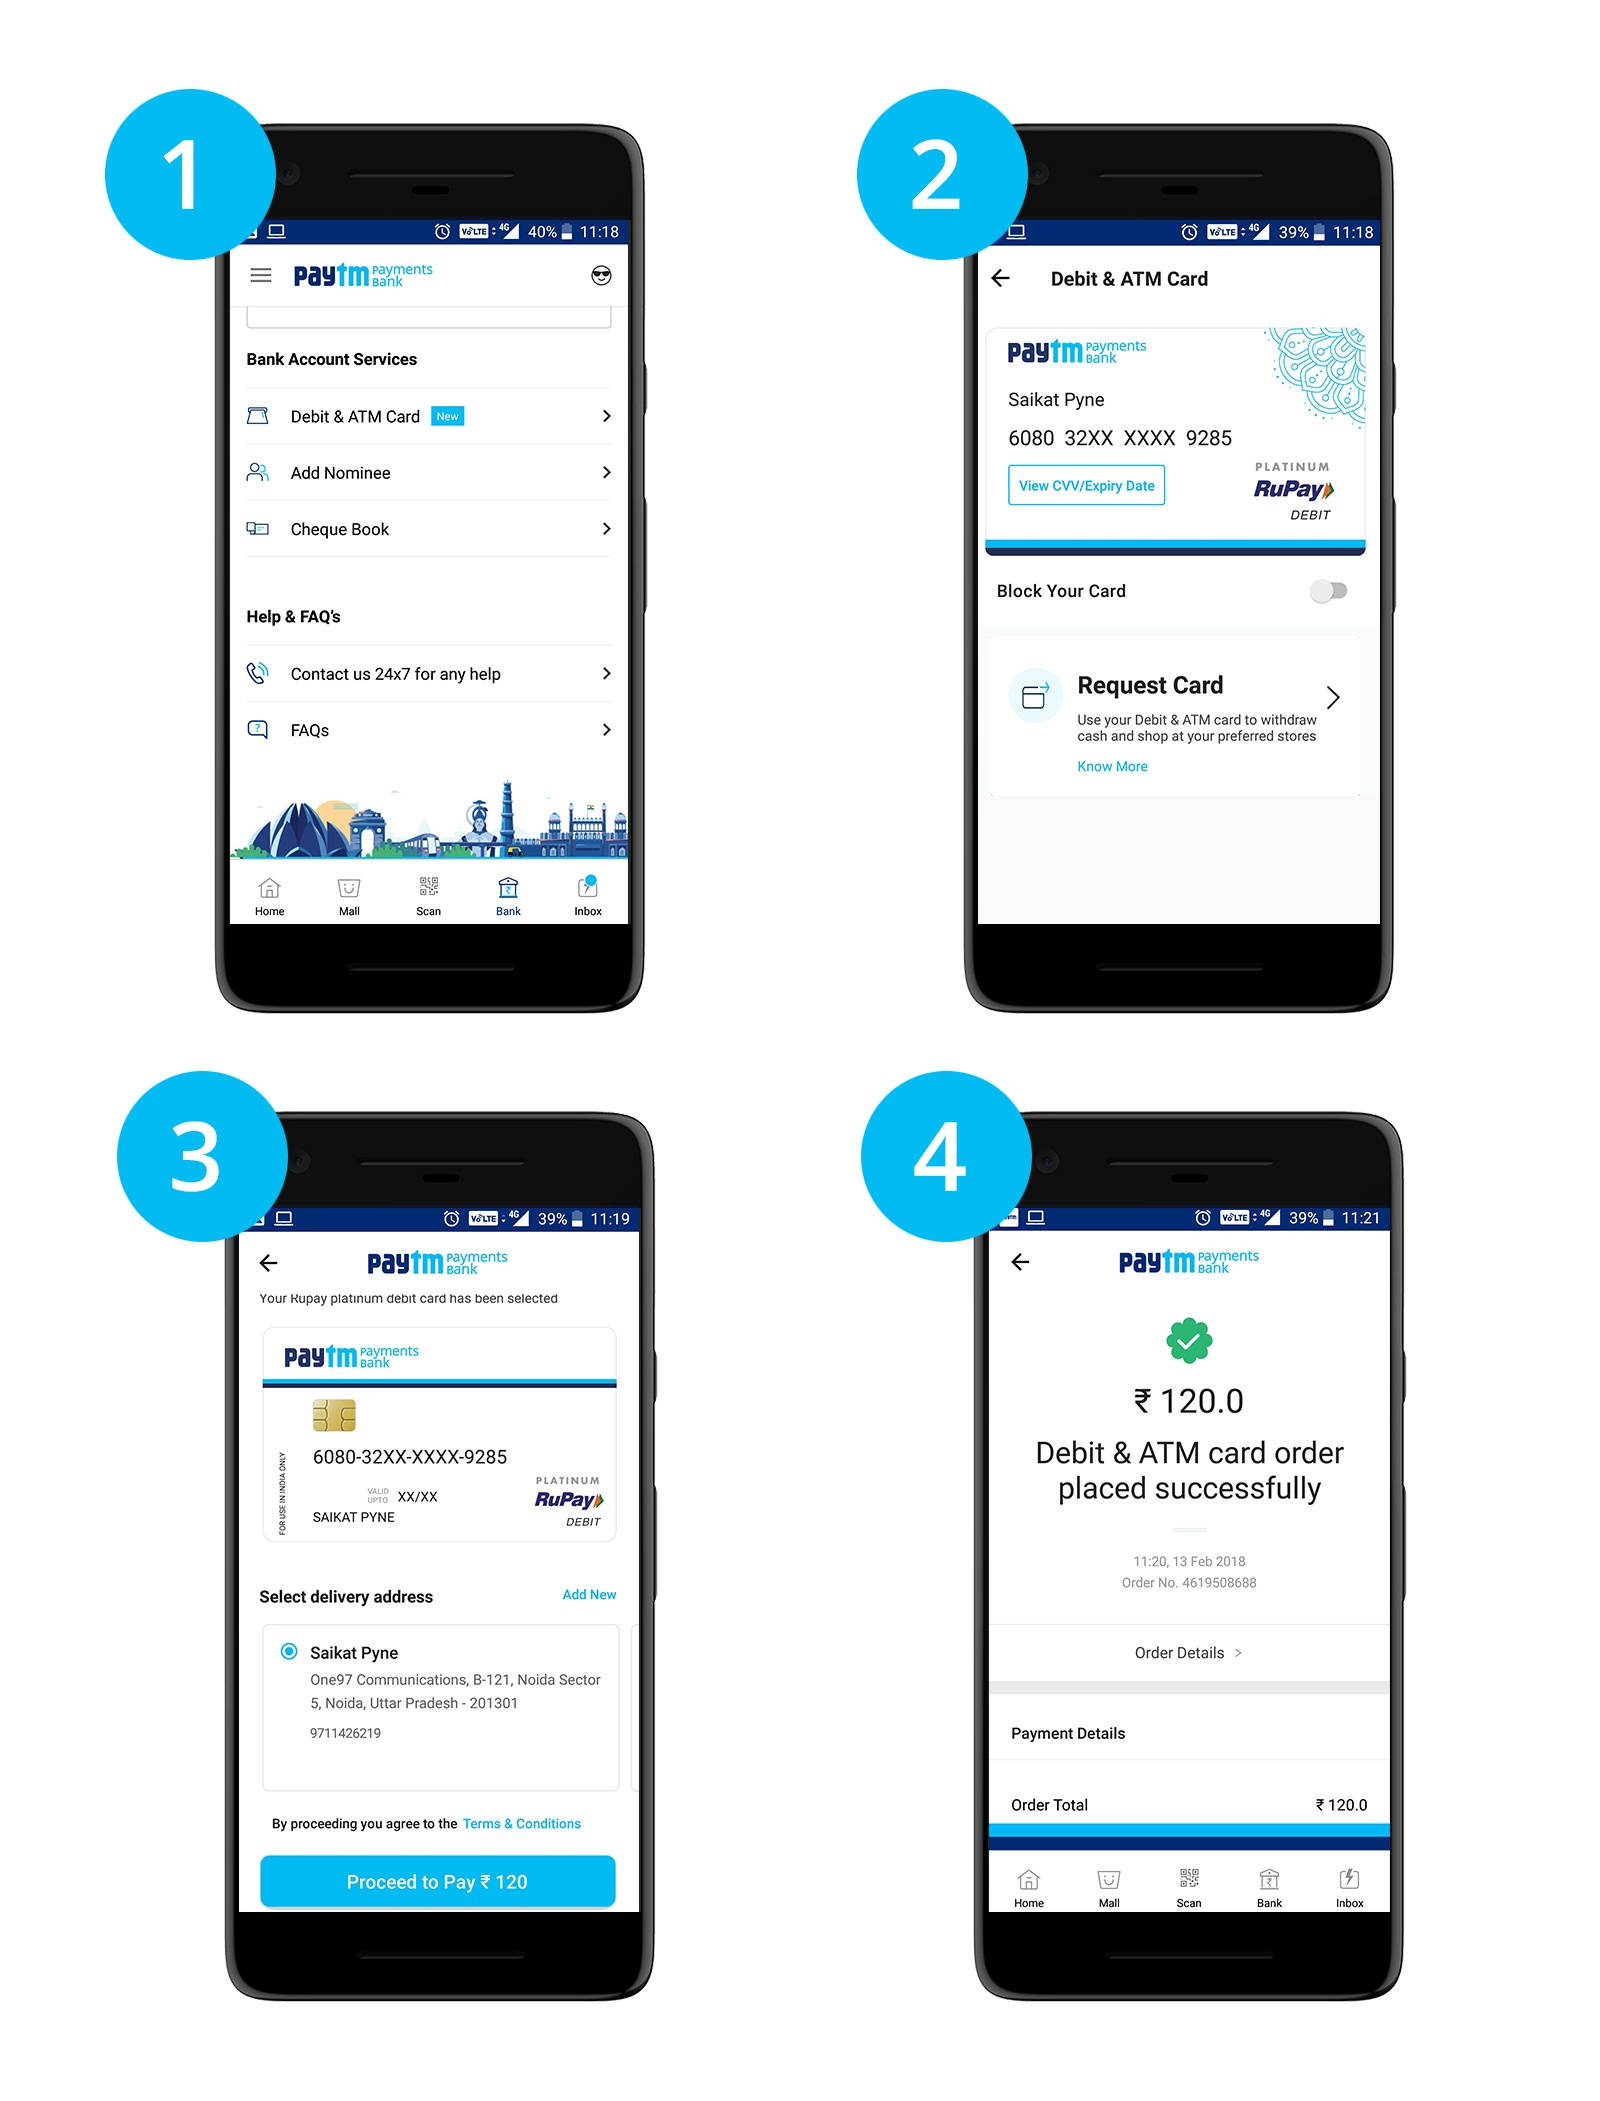 How to apply for Paytm debit card